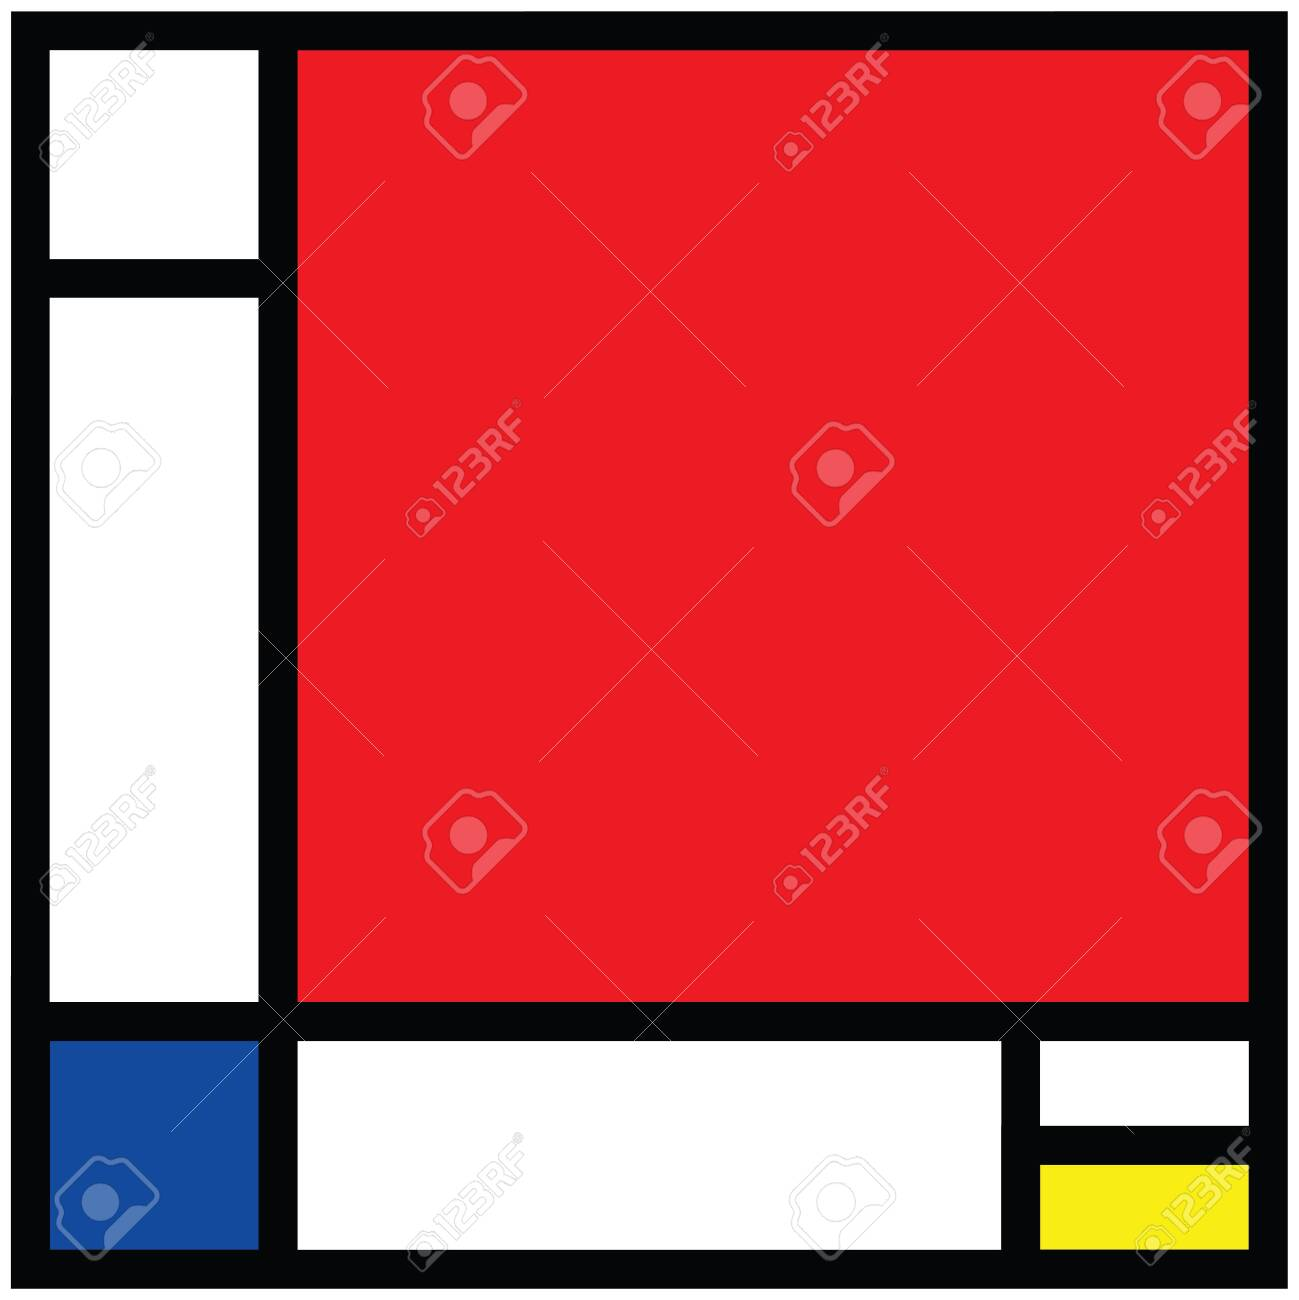 Checkered style emulation. The Netherlands art history and Holland painter. Dutch mosaic or checker line pattern. Retro pop art pattern - 156621205